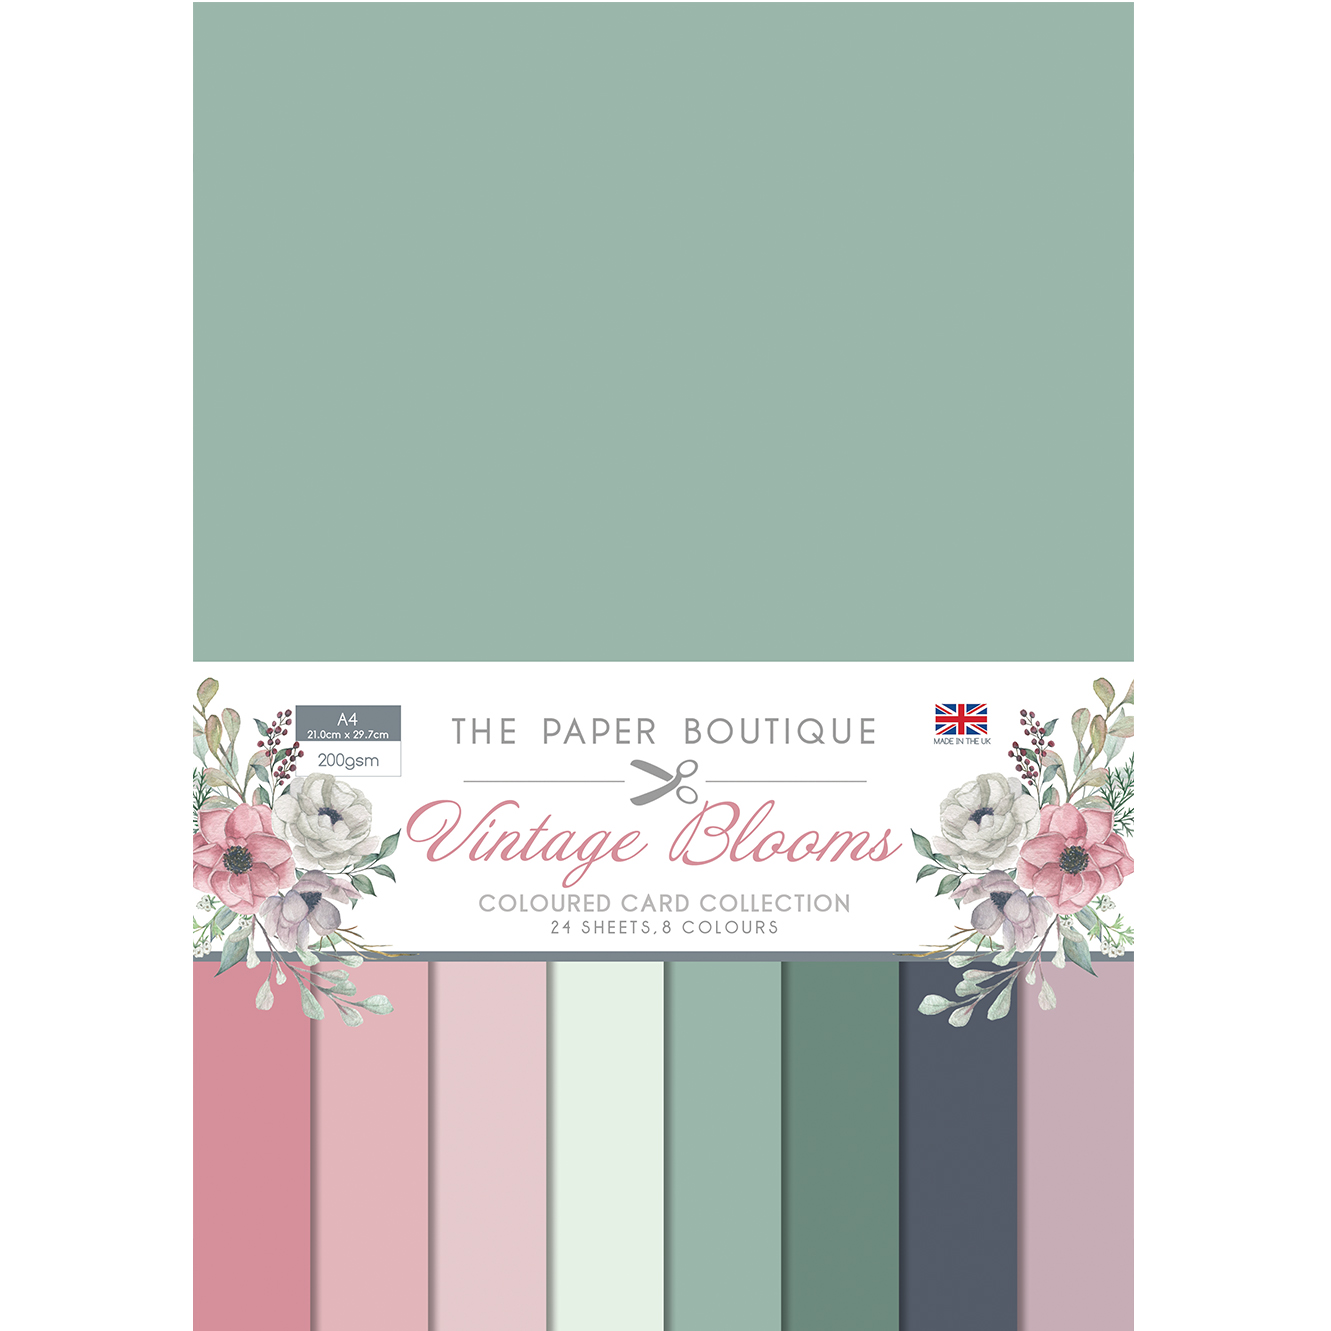 The Paper Boutique Vintage Blooms Coloured Card Collection